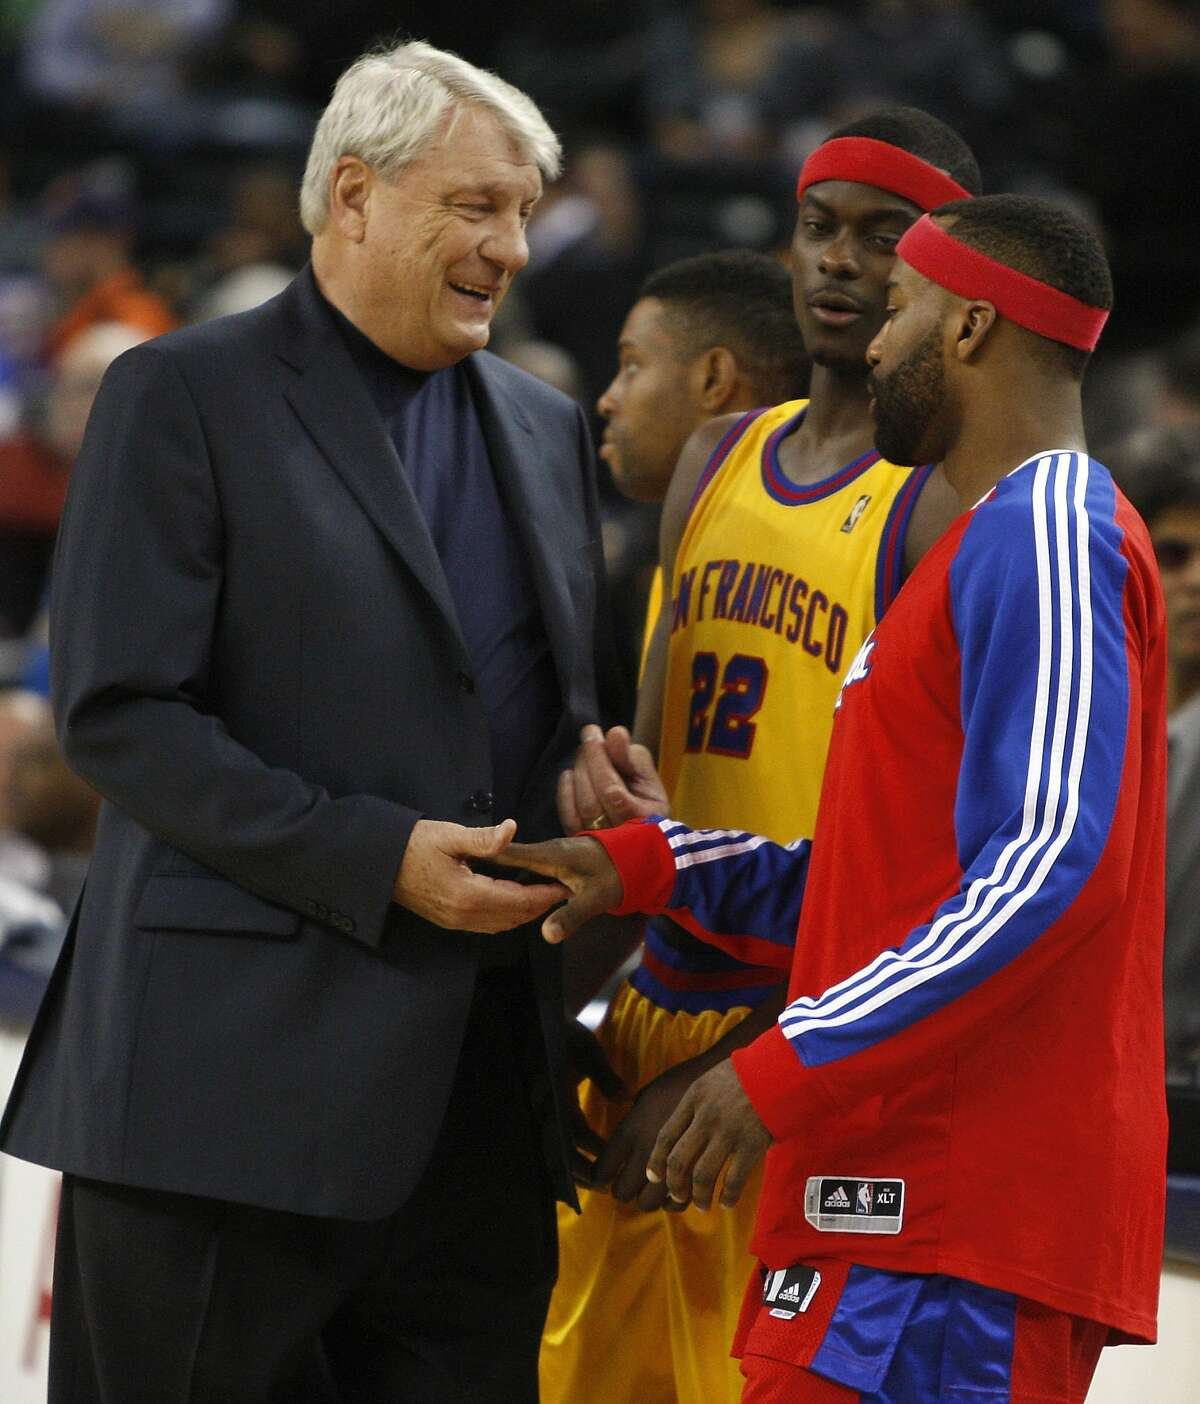 Los Angeles Clippers' Baron Davis, right, greets his former coach, Golden State Warriors' Don Nelson, prior to an NBA basketball game Wednesday, Feb. 10, 2010, in Oakland, Calif. At center is Warriors' Anthony Morrow.